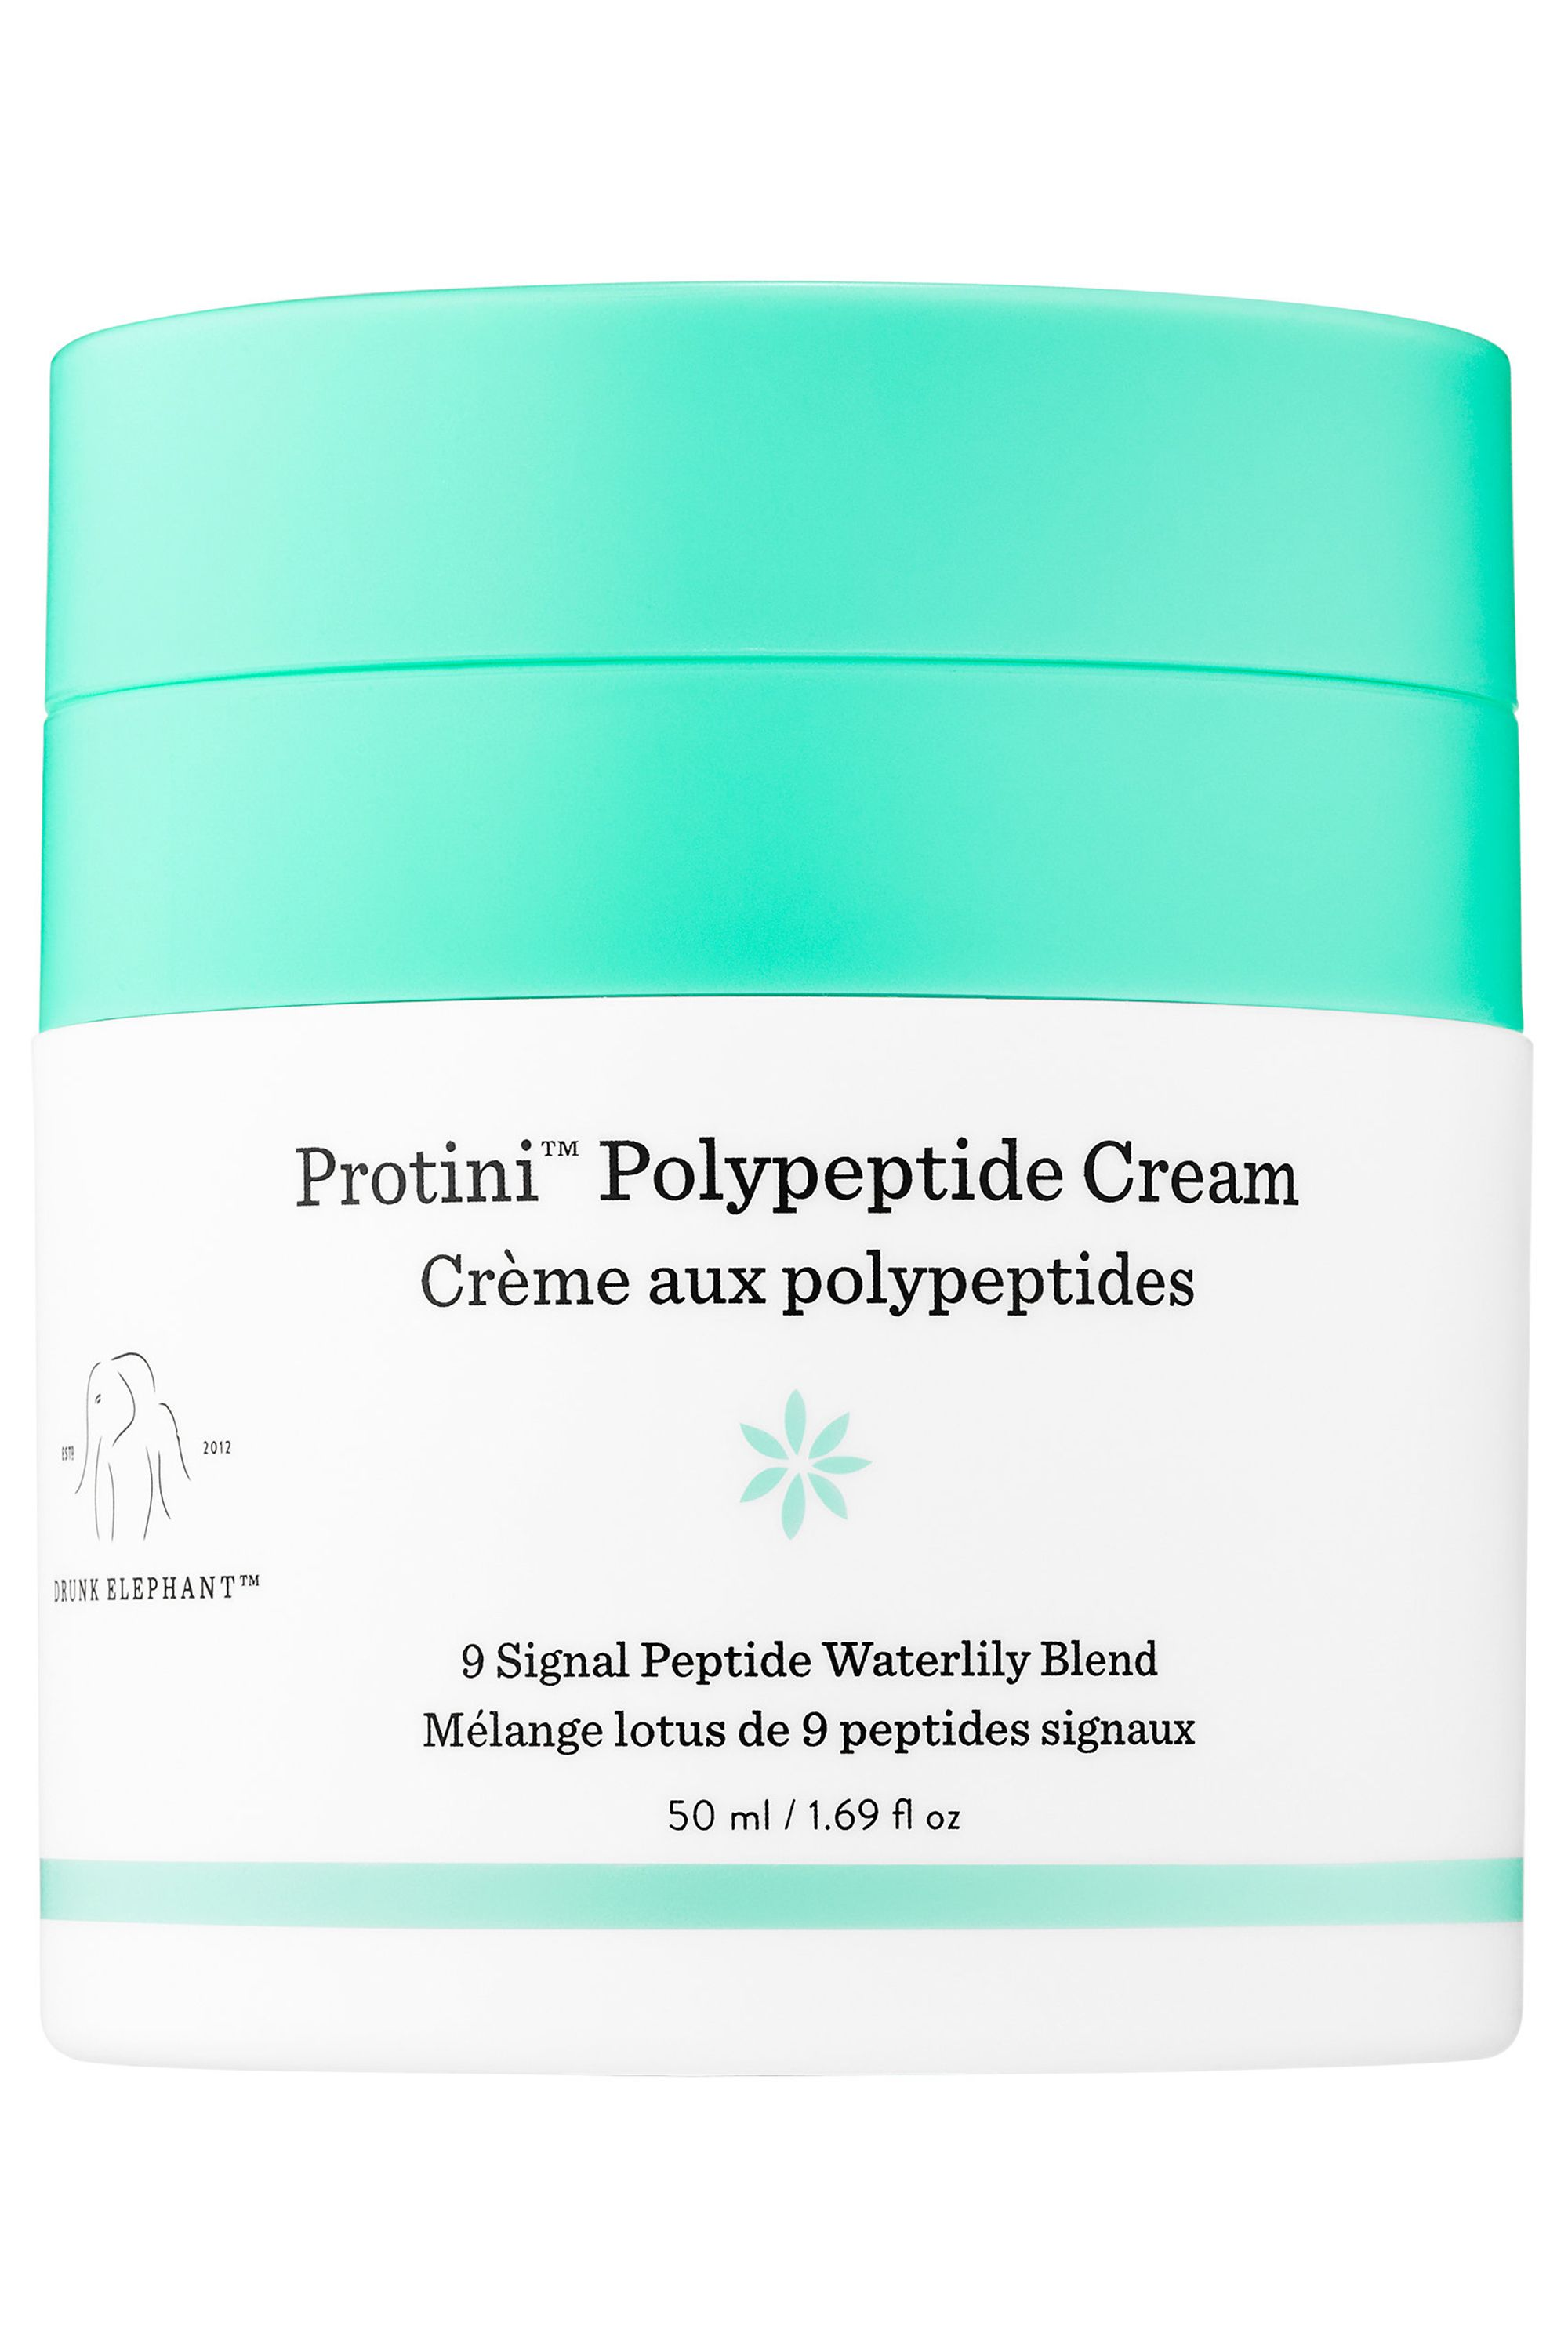 Best selling skincare at Sephora